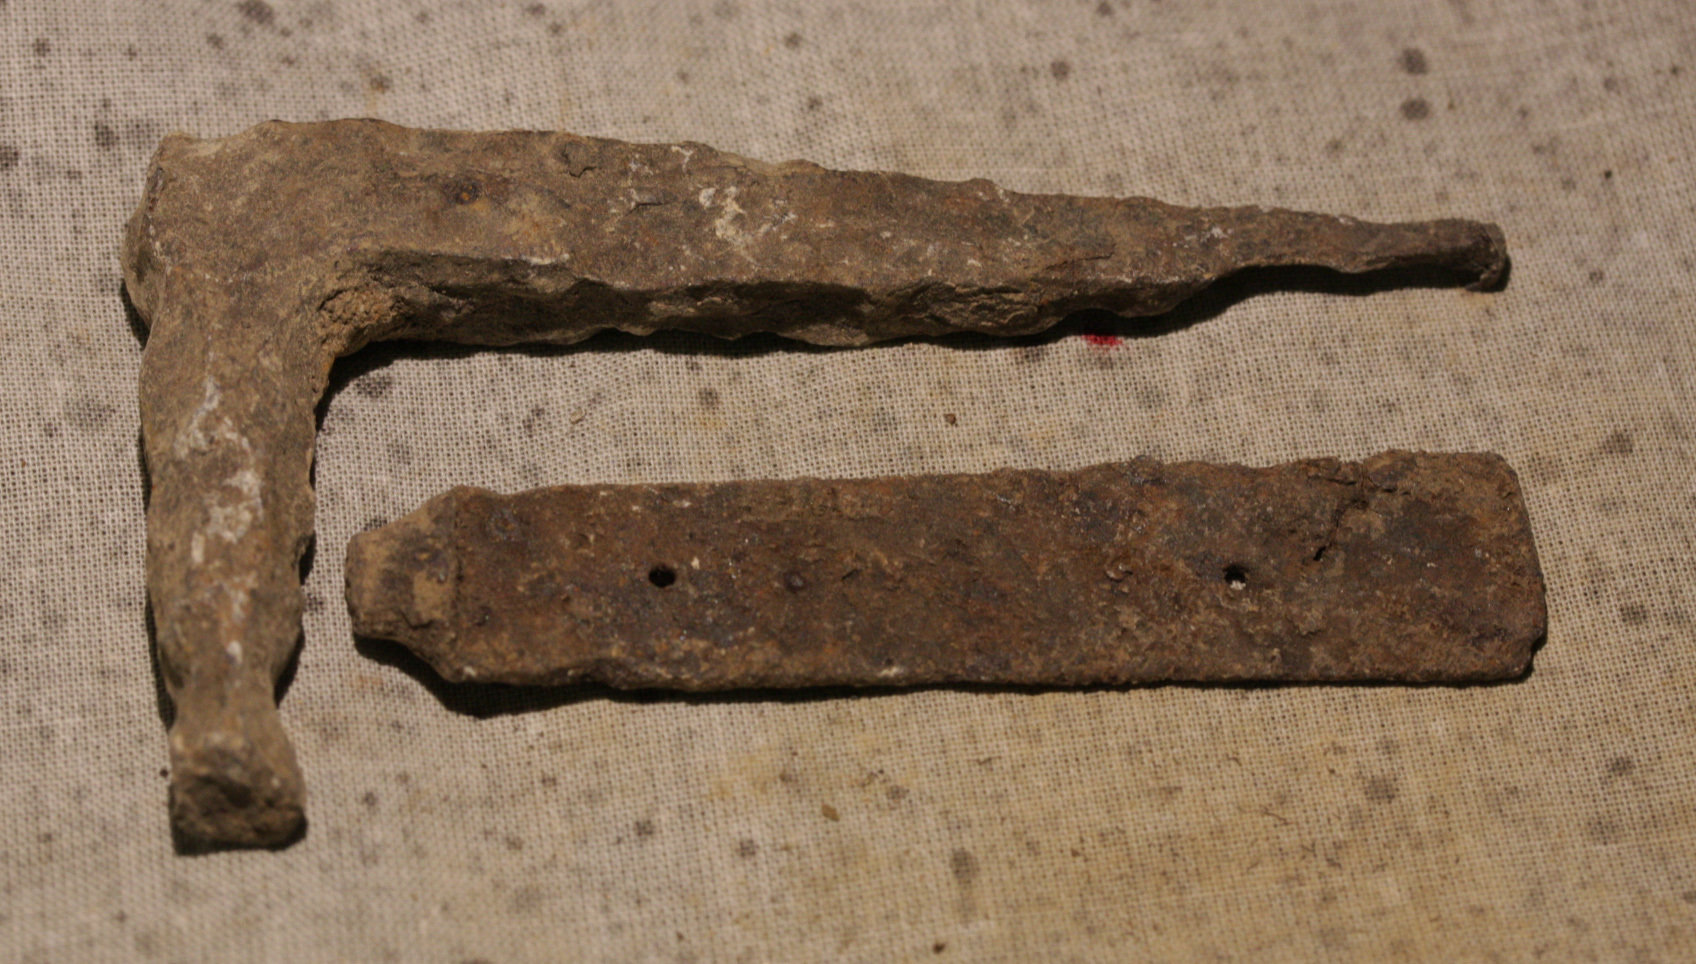 JUST ADDED ON 3/21 - THE BATTLE OF TOTOPOTOMOY CREEK - Two Iron Relics